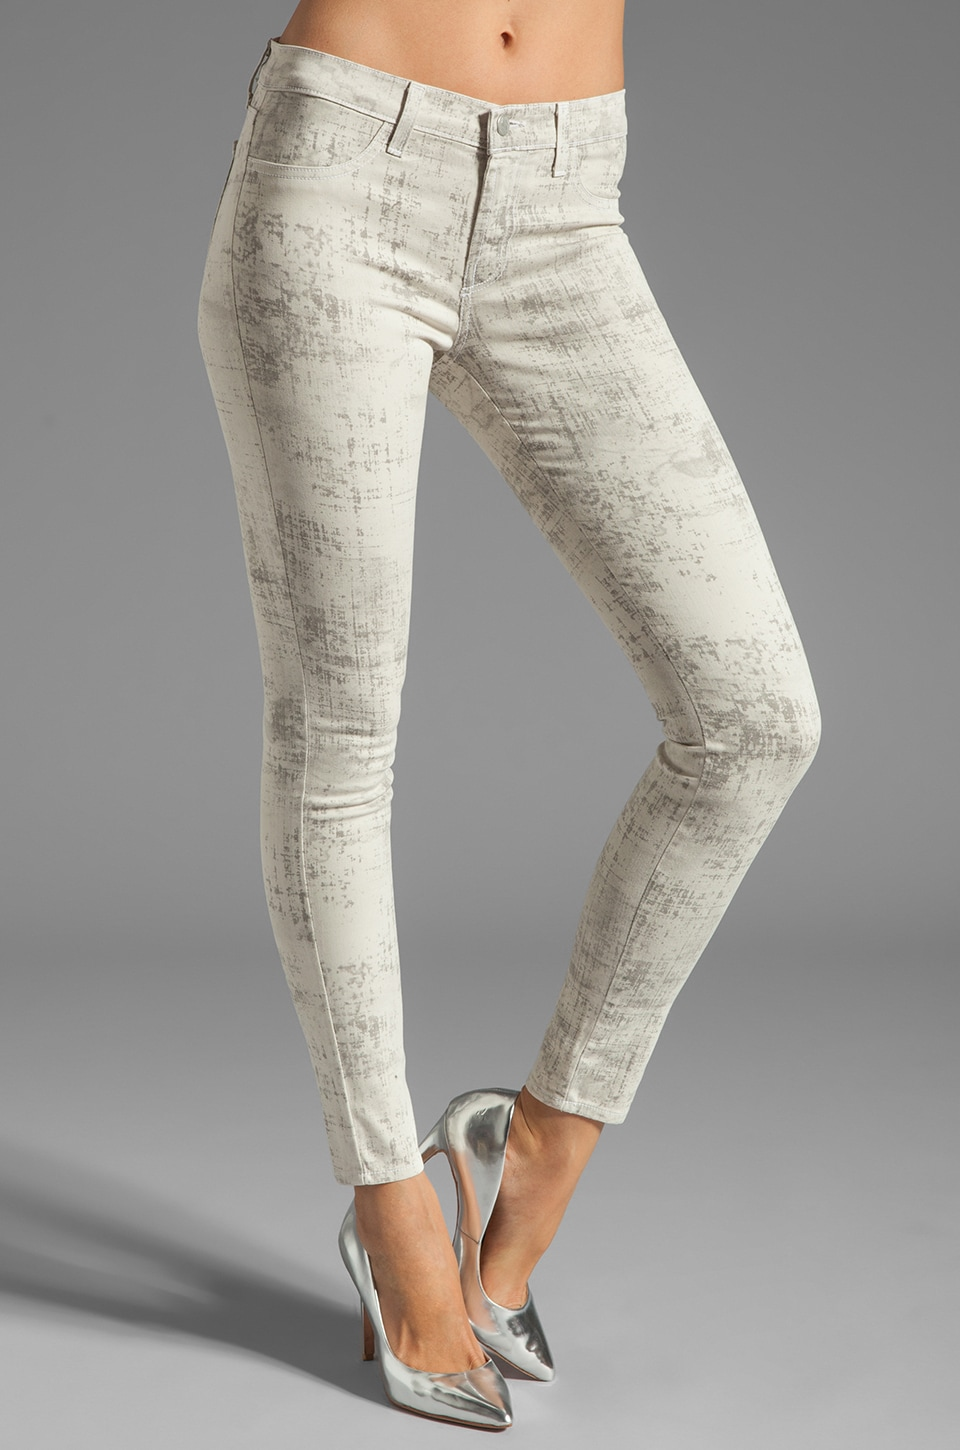 J Brand Mid Rise Skinny in Coated Noise